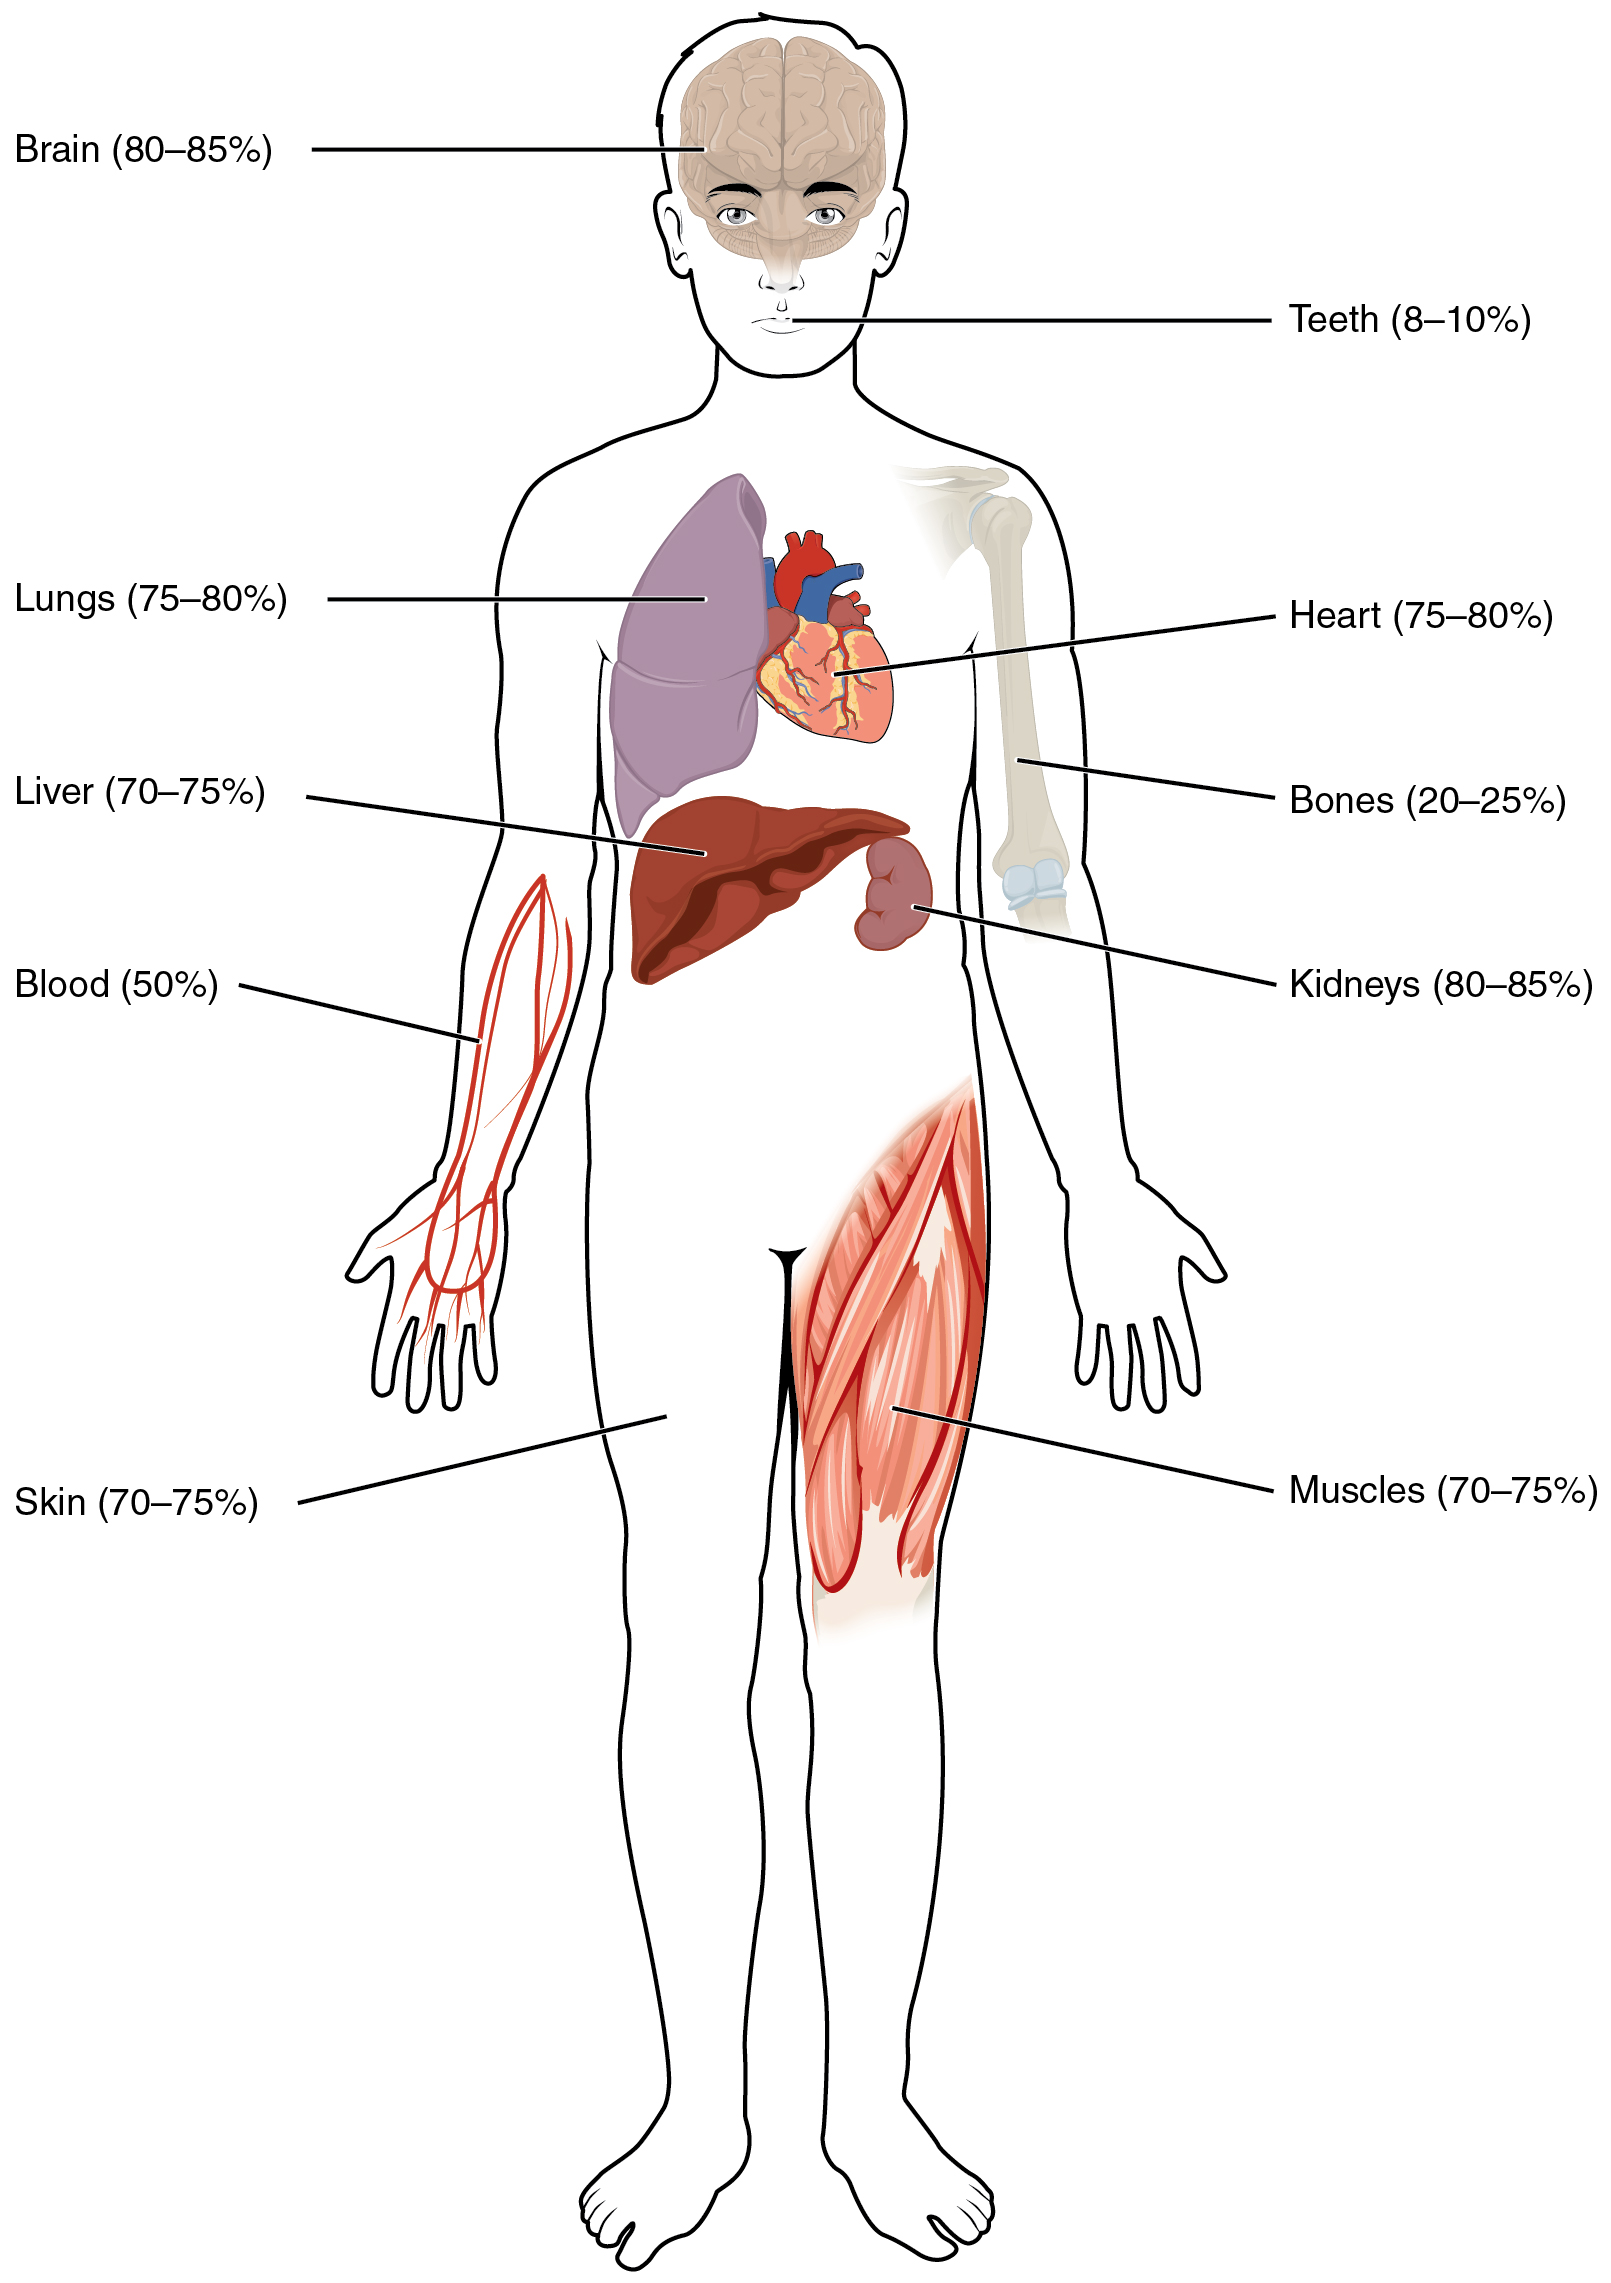 The Human Body Organs Labeled Water content of the body's